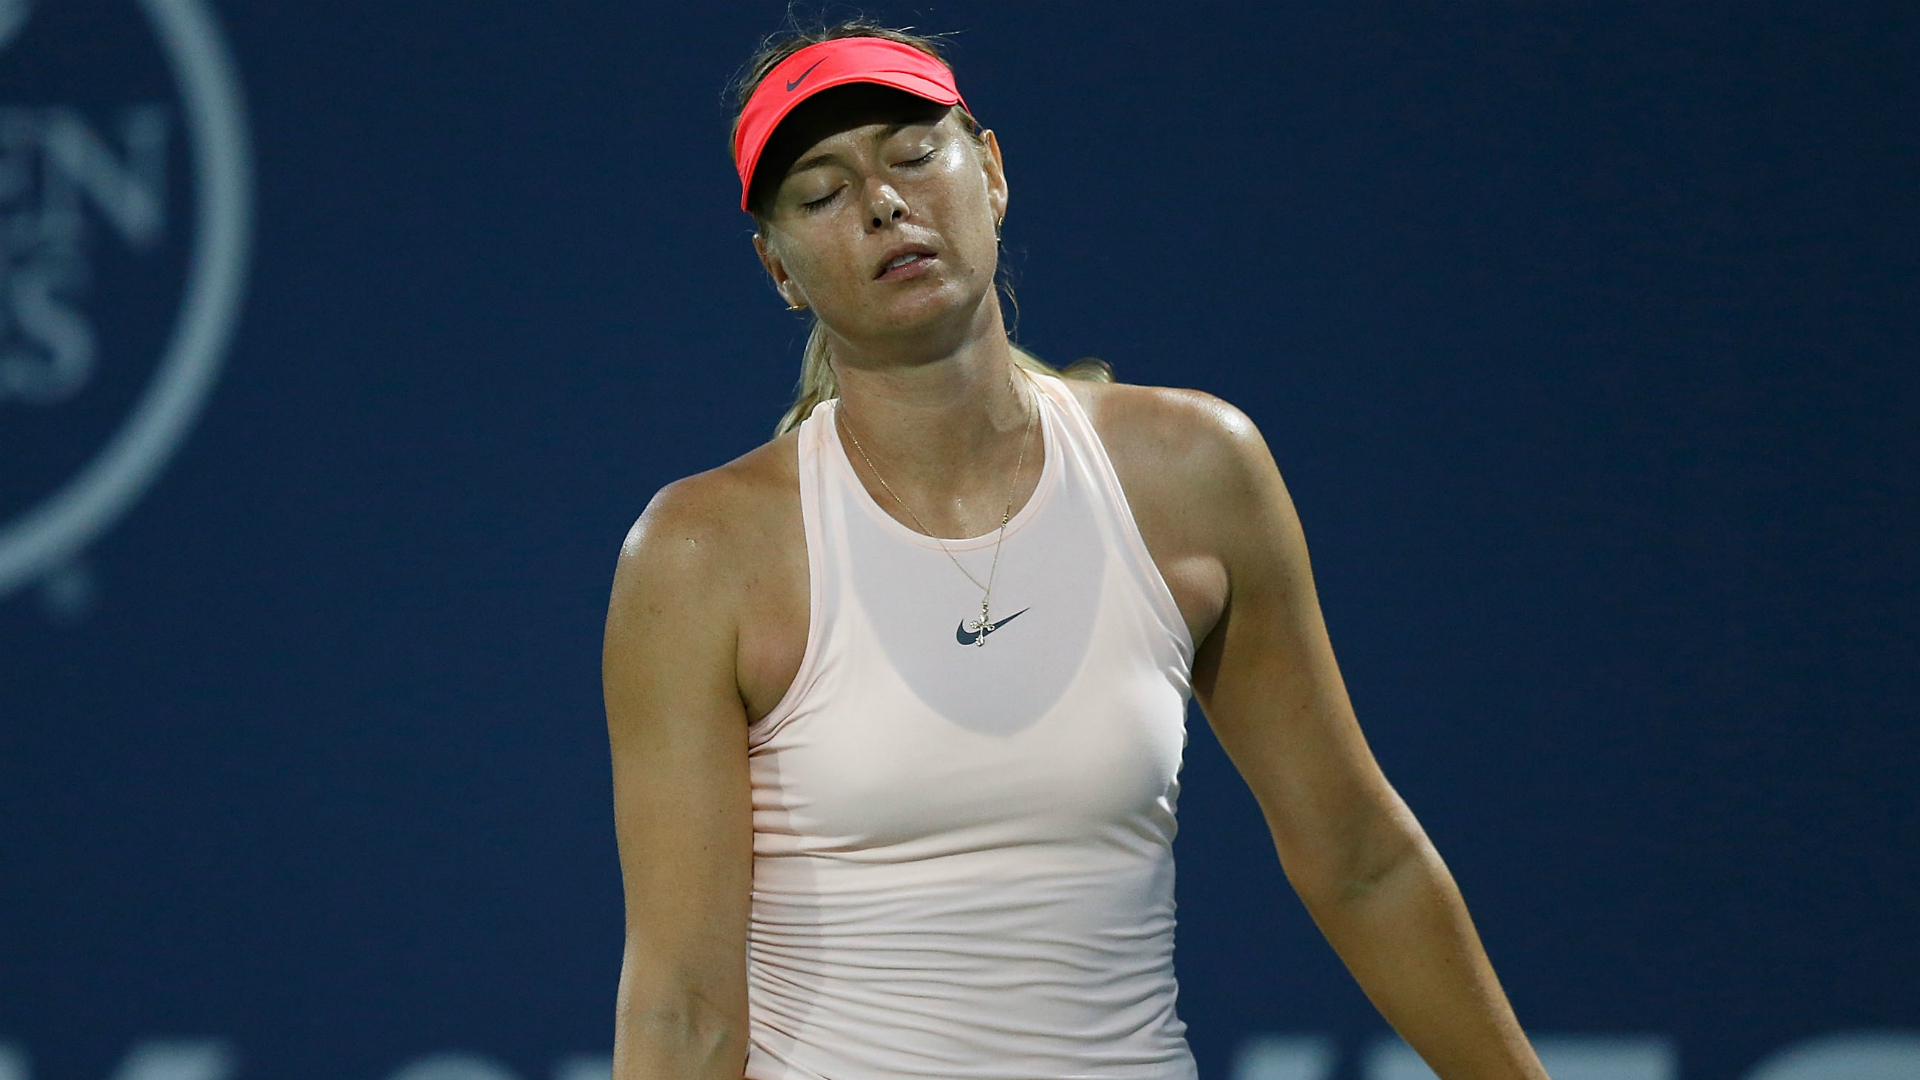 Maria Sharapova pulls out Cincinnati Open with injury